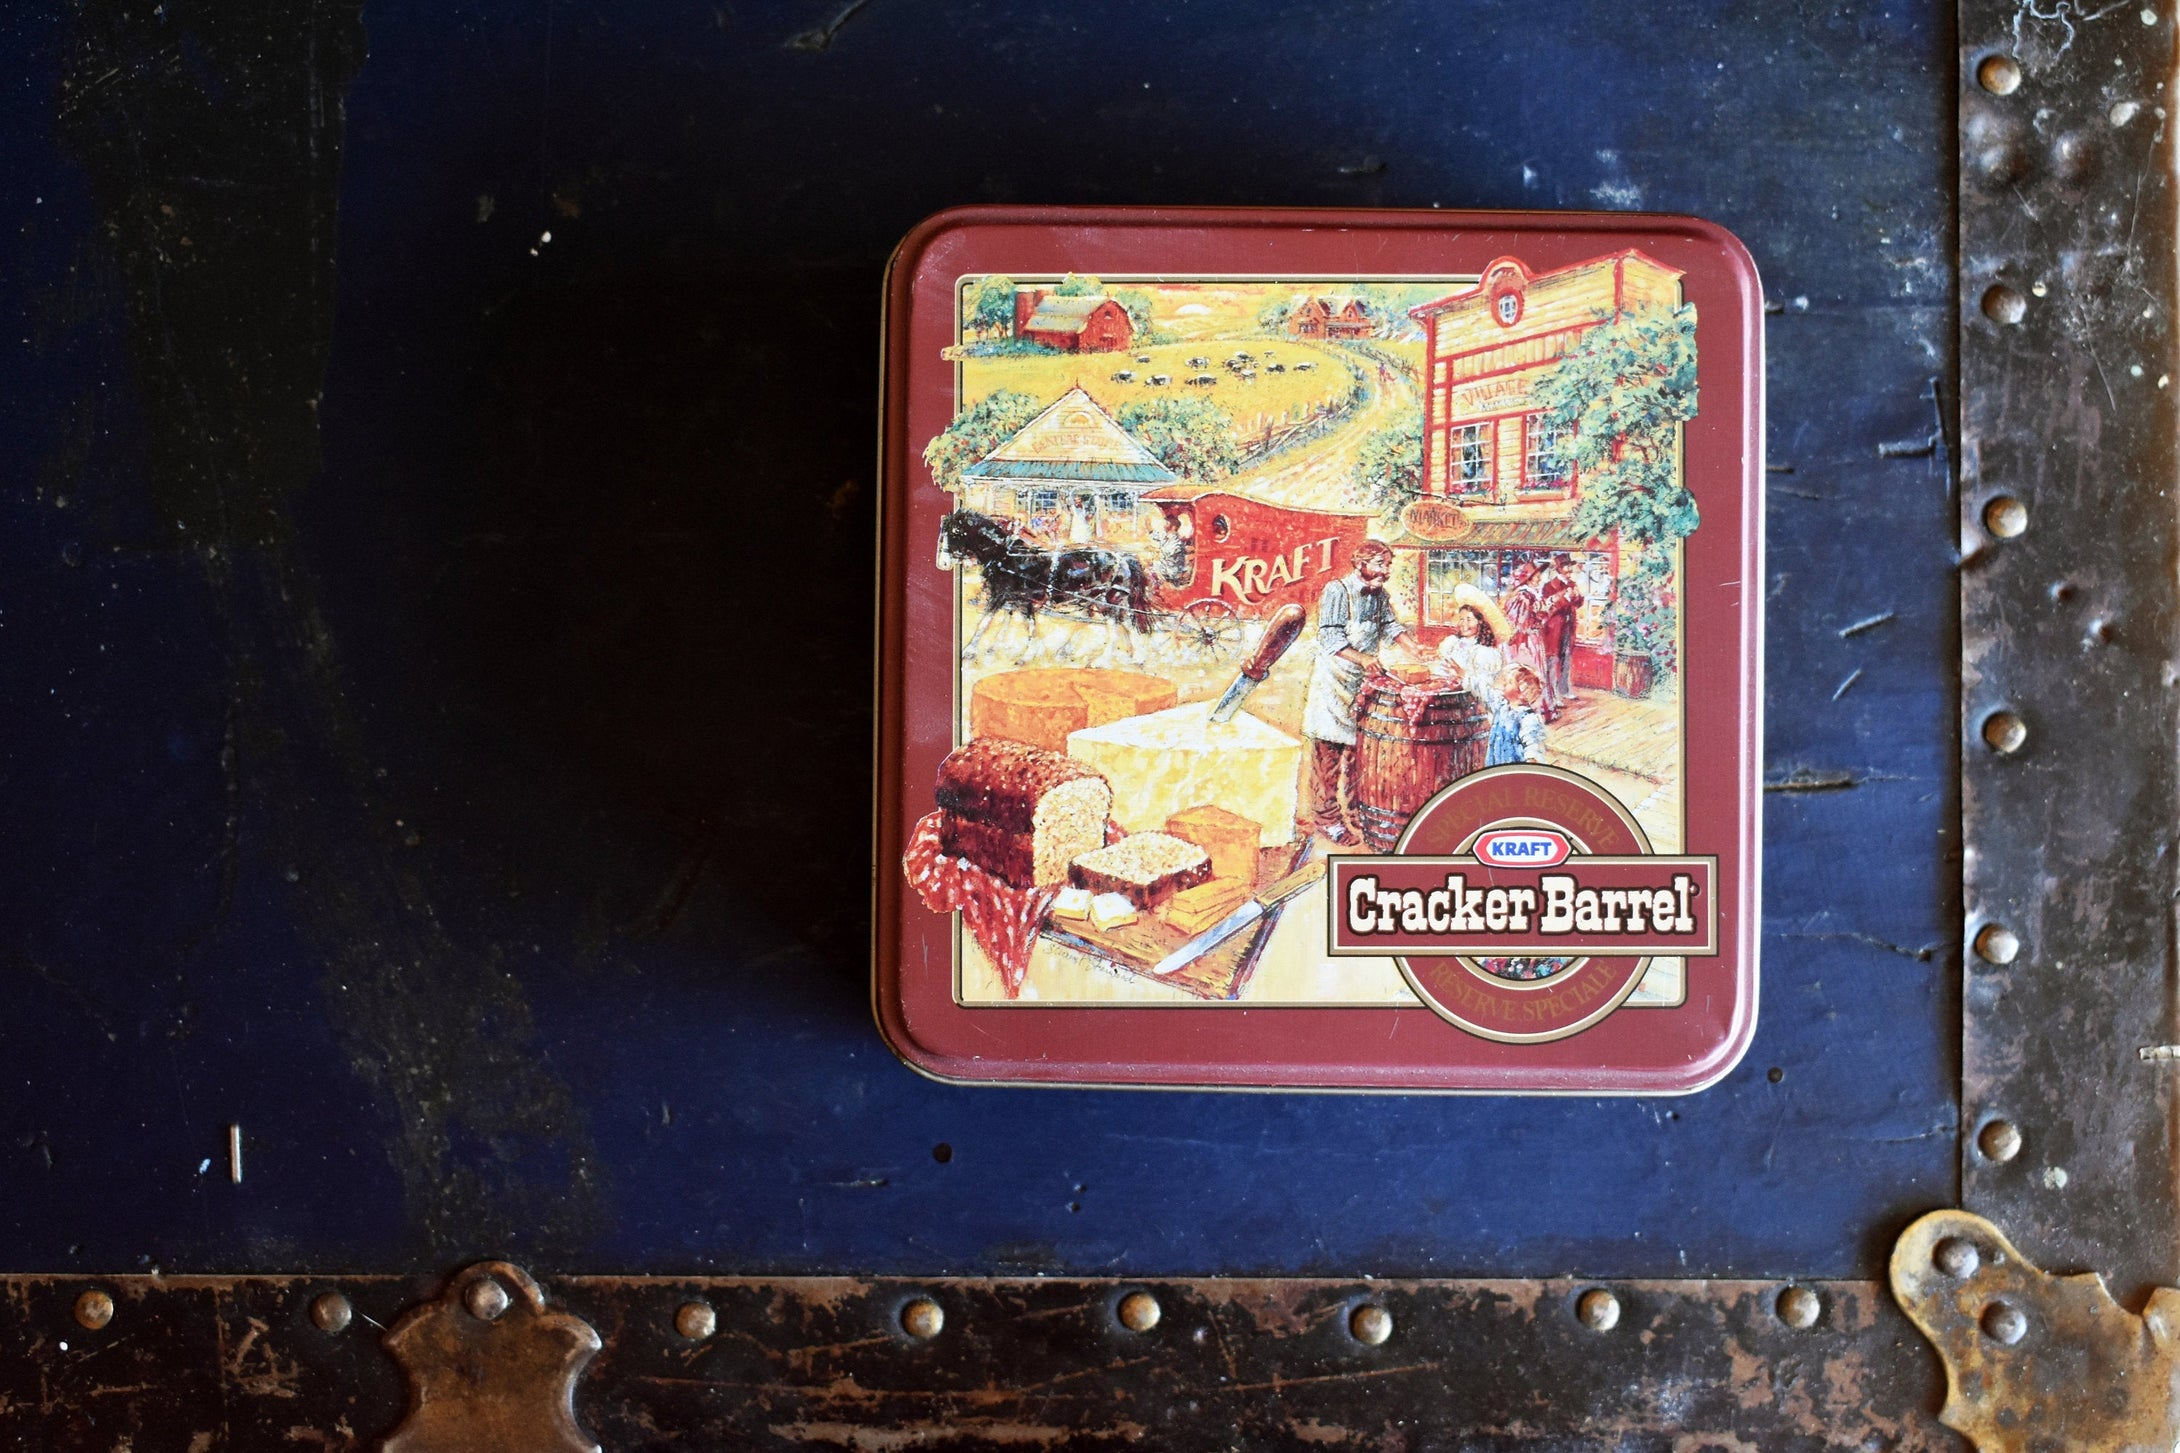 Kraft Cracker Barrel Cheese Tin - Vintage Food Advertising Container- Made in Canada - 1990s